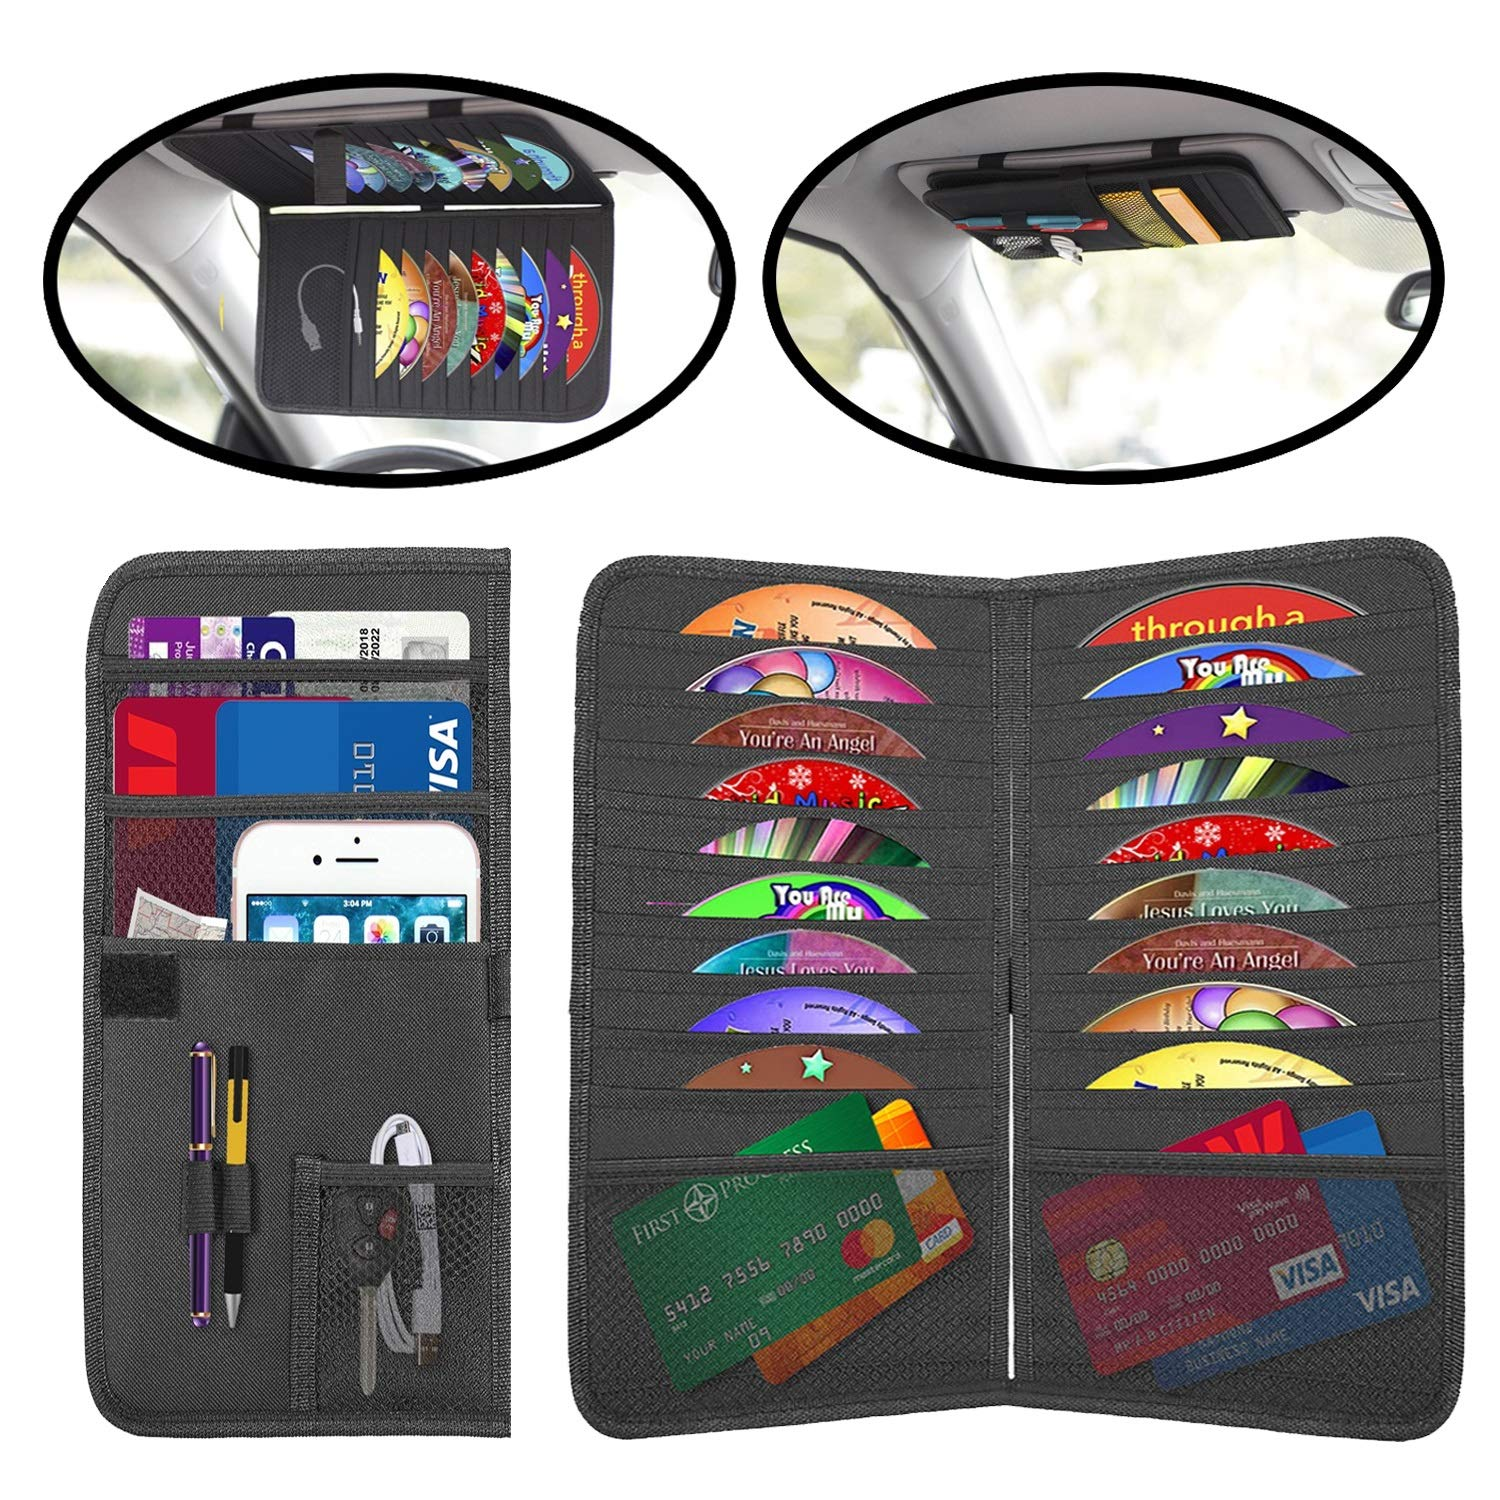 2 In 1 Auto Interior Accessories Organizer Pocket Lebogner Car Sun Visor Organizer And CD Holder Personal Belonging and Registration DVDs Storage Case 18 Pocket CD Document Ticket Storage Pouch